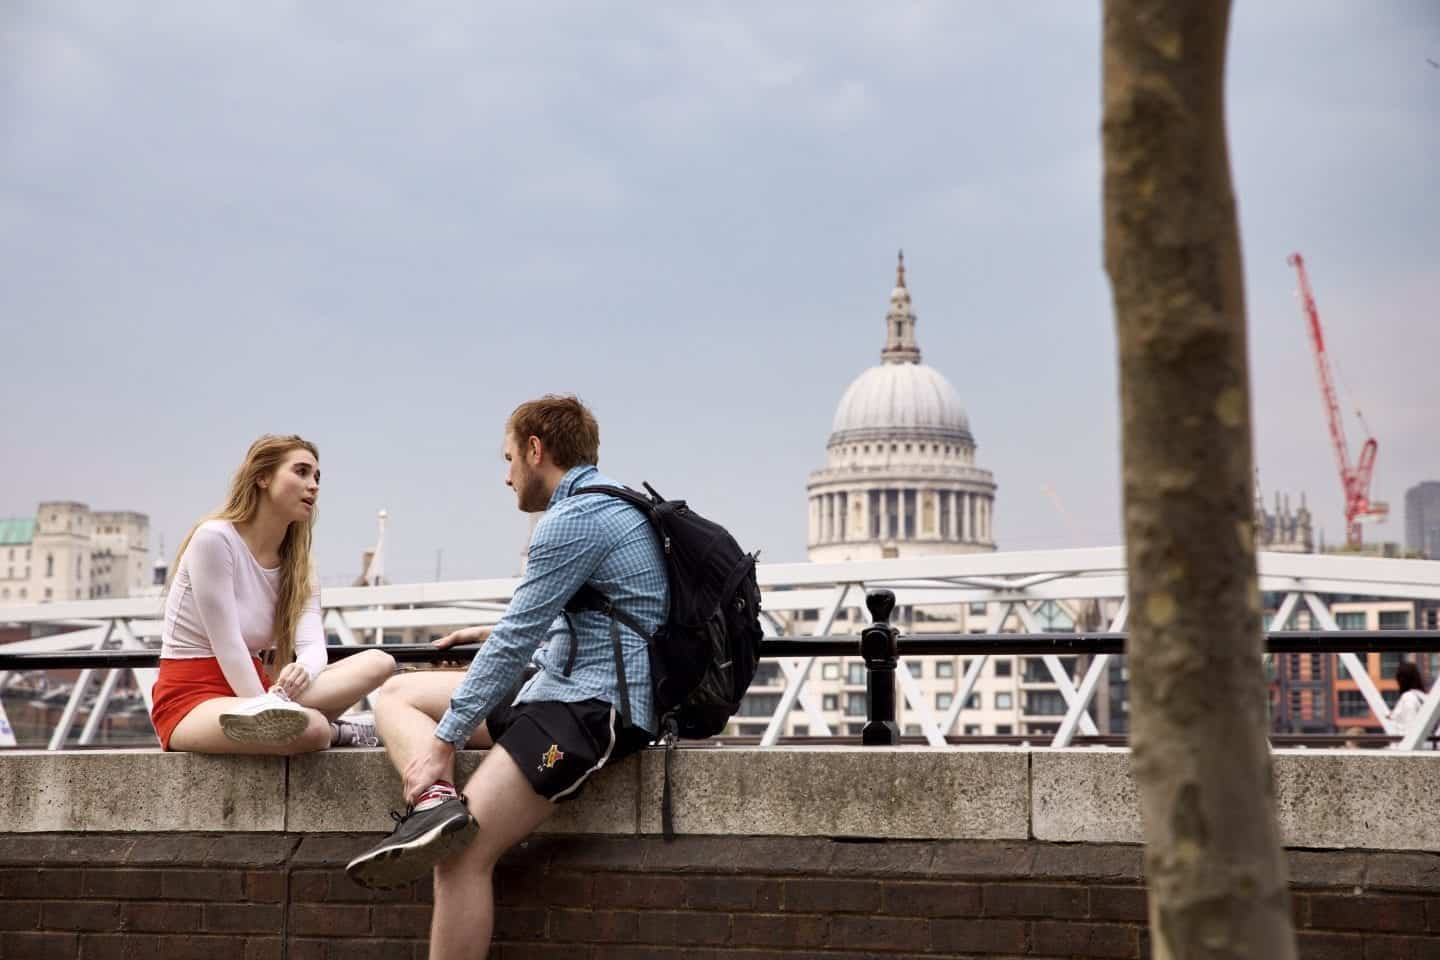 UK Youth Mobility Visa For Kiwis moving to the UK